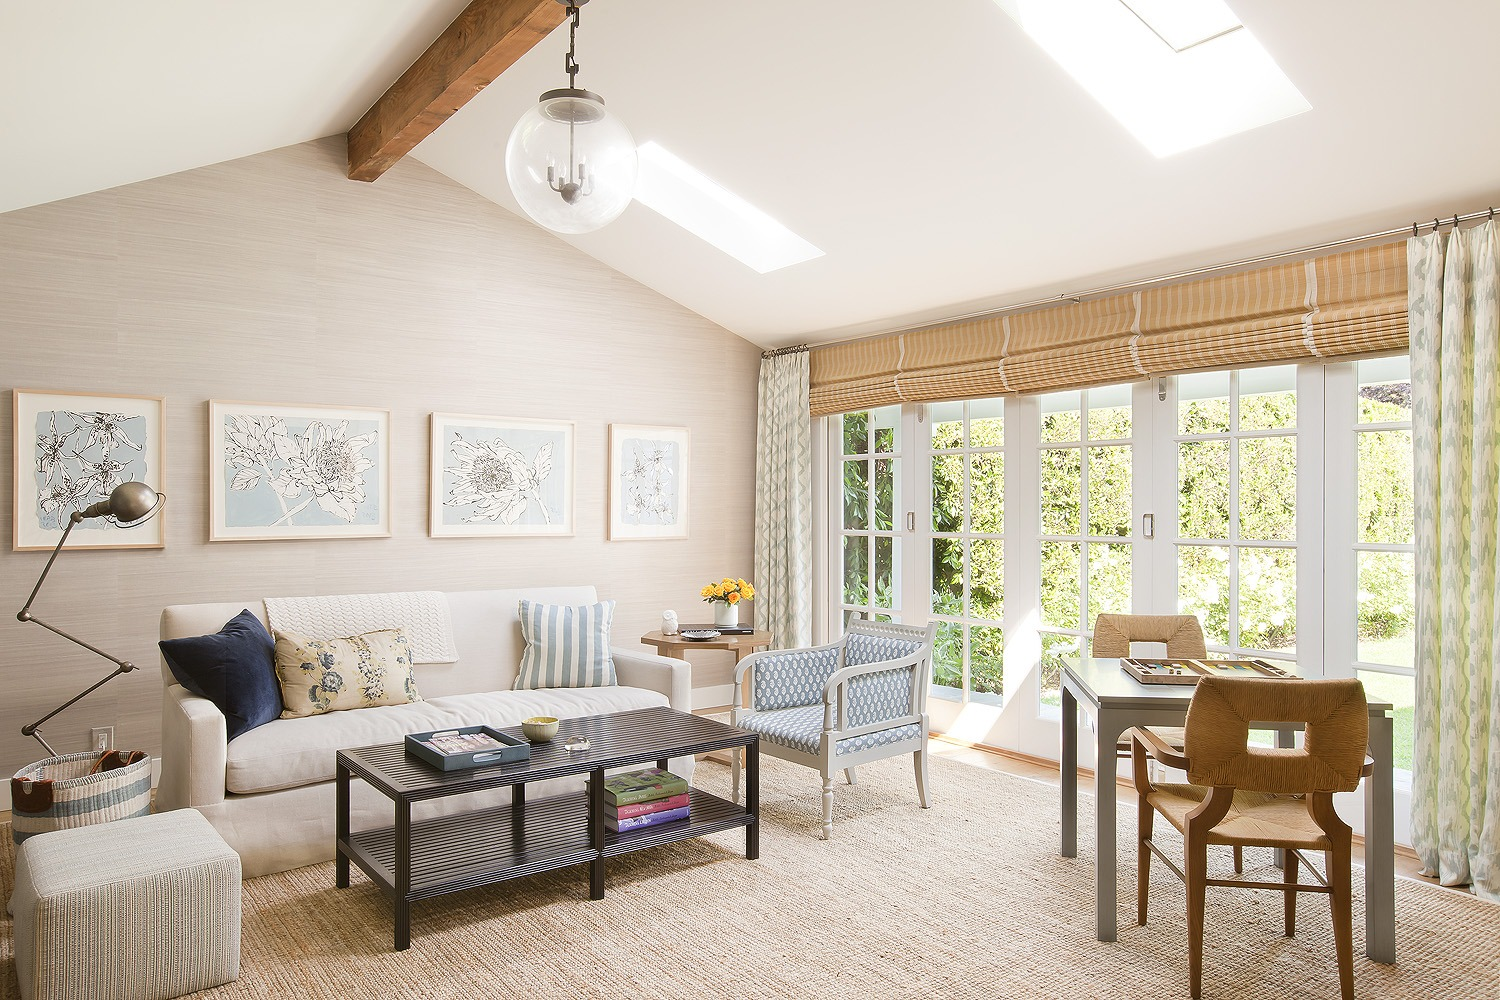 10 easy ways to decorate blank walls christine markatos - How to decorate a blank wall ...